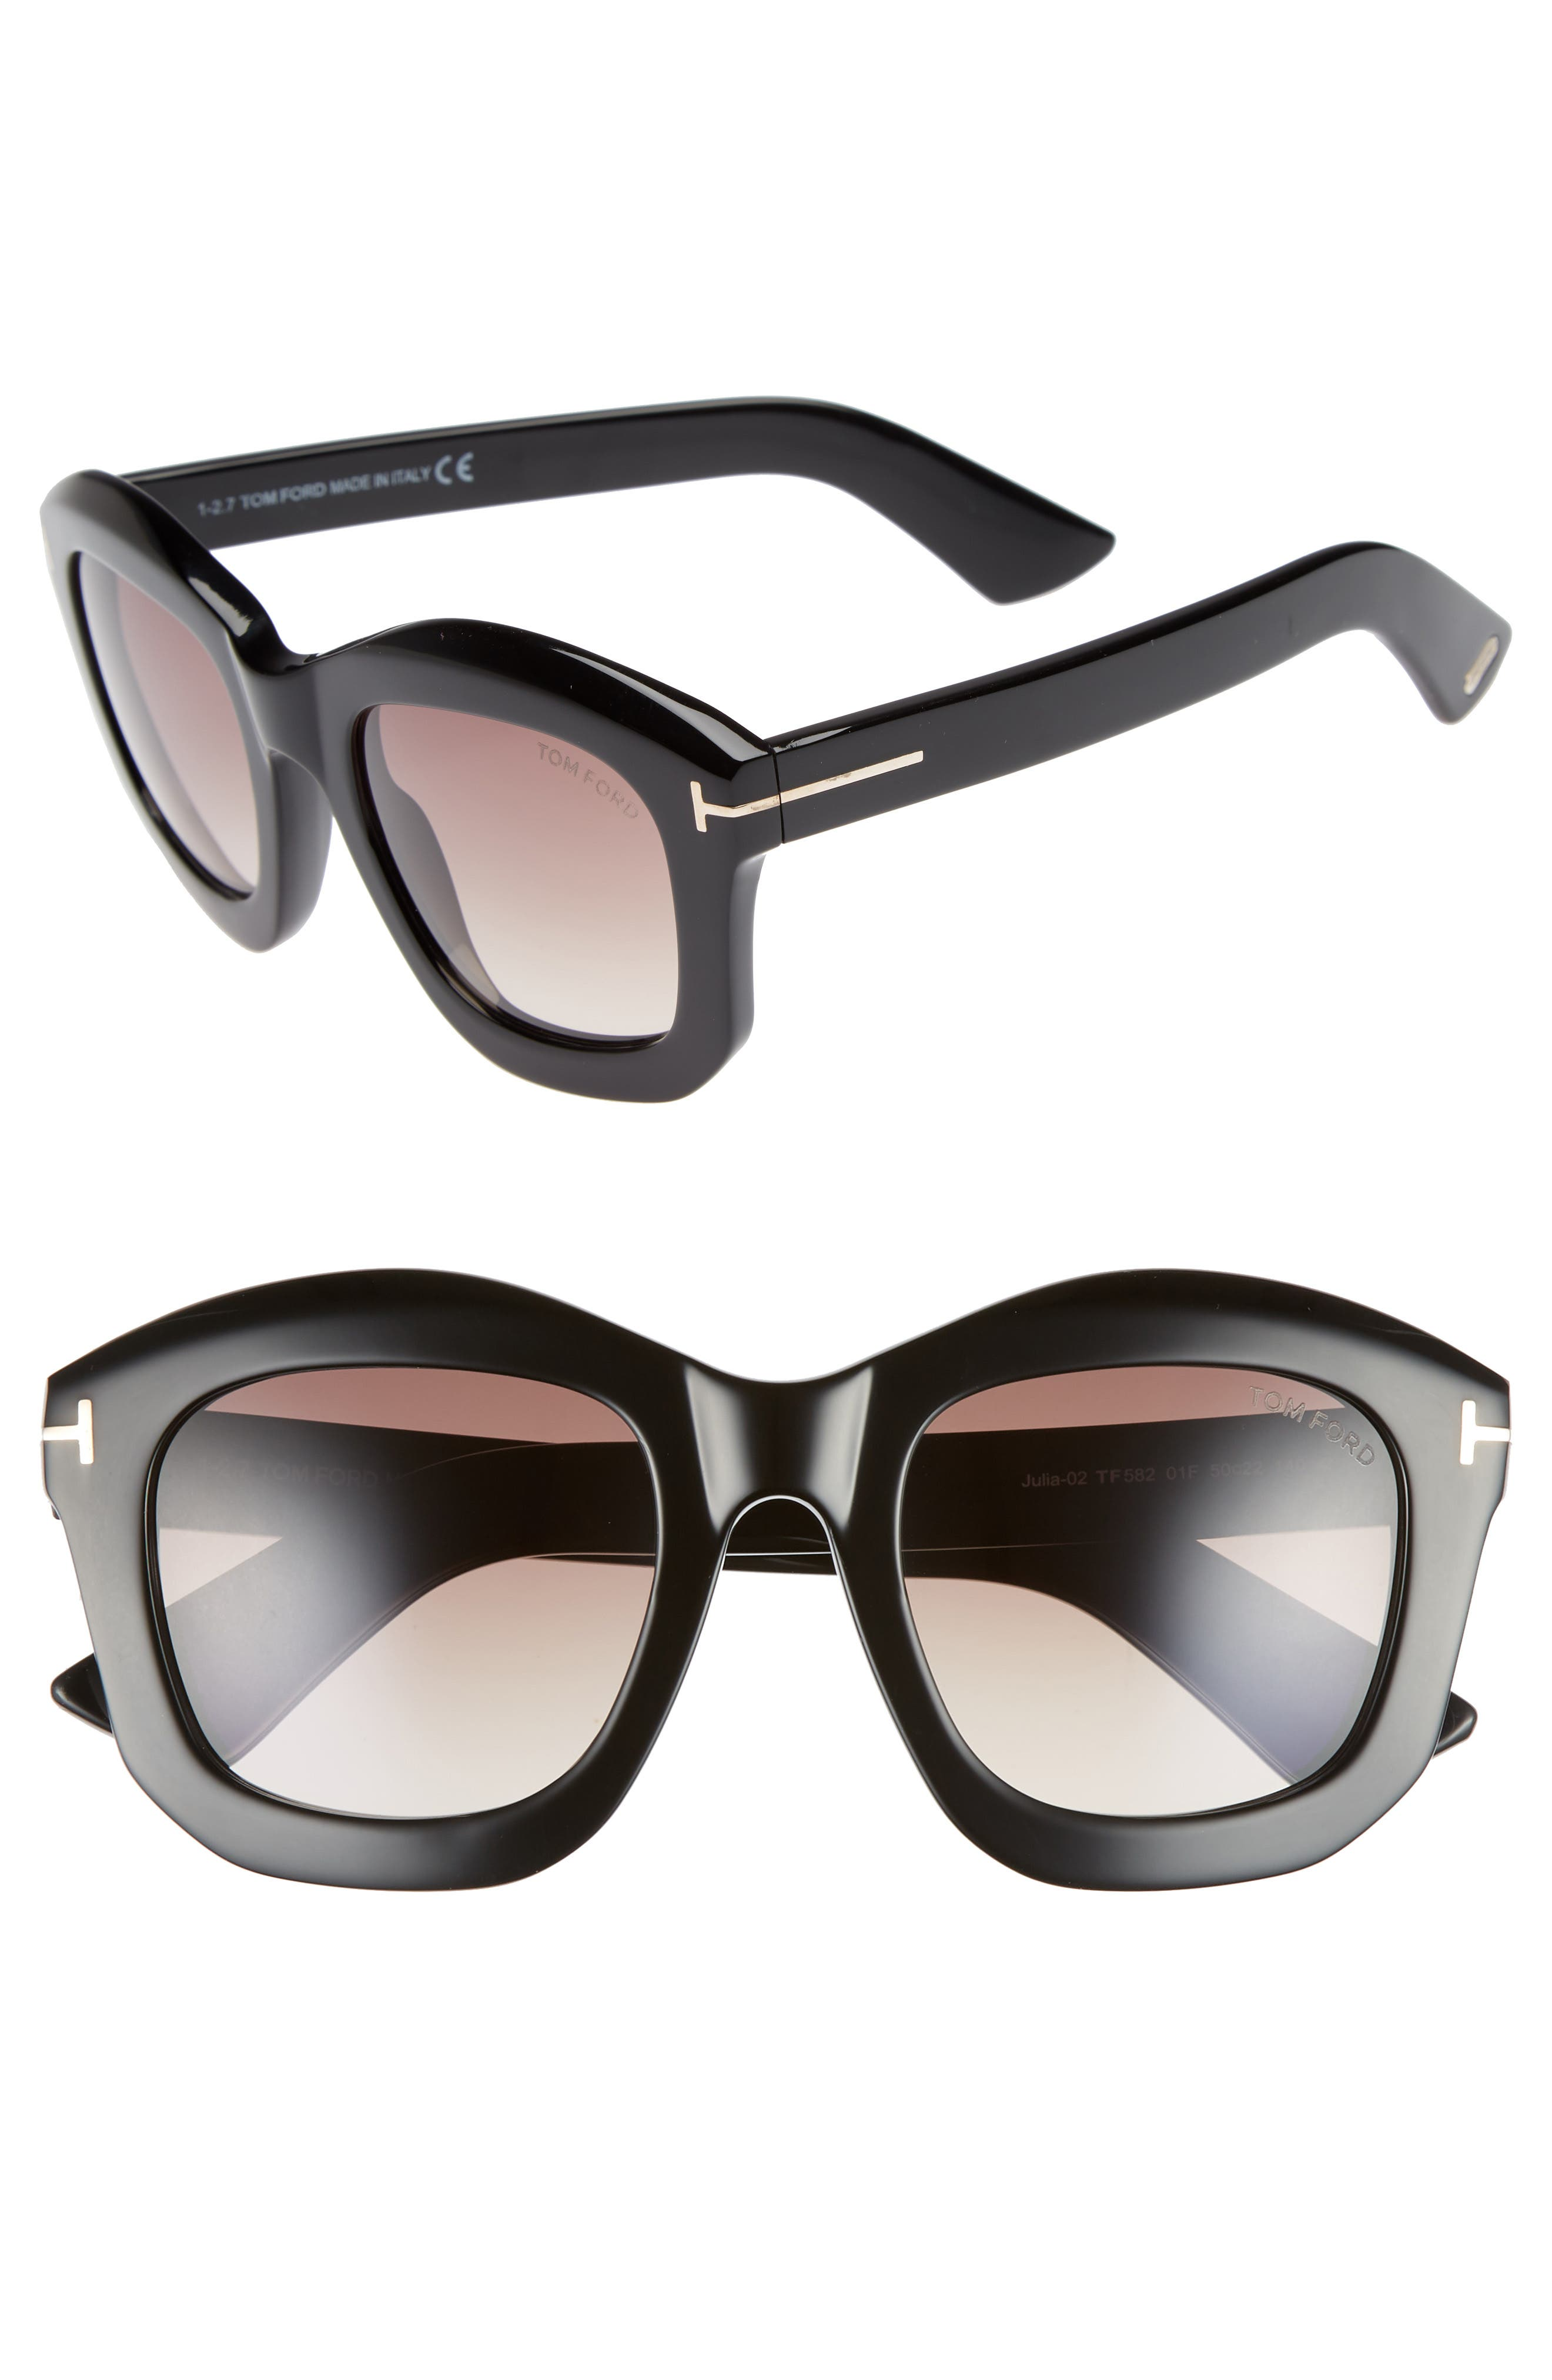 Tom Ford Julia 50Mm Gradient Square Sunglasses - Shiny Black Acetate/ Rose Gold